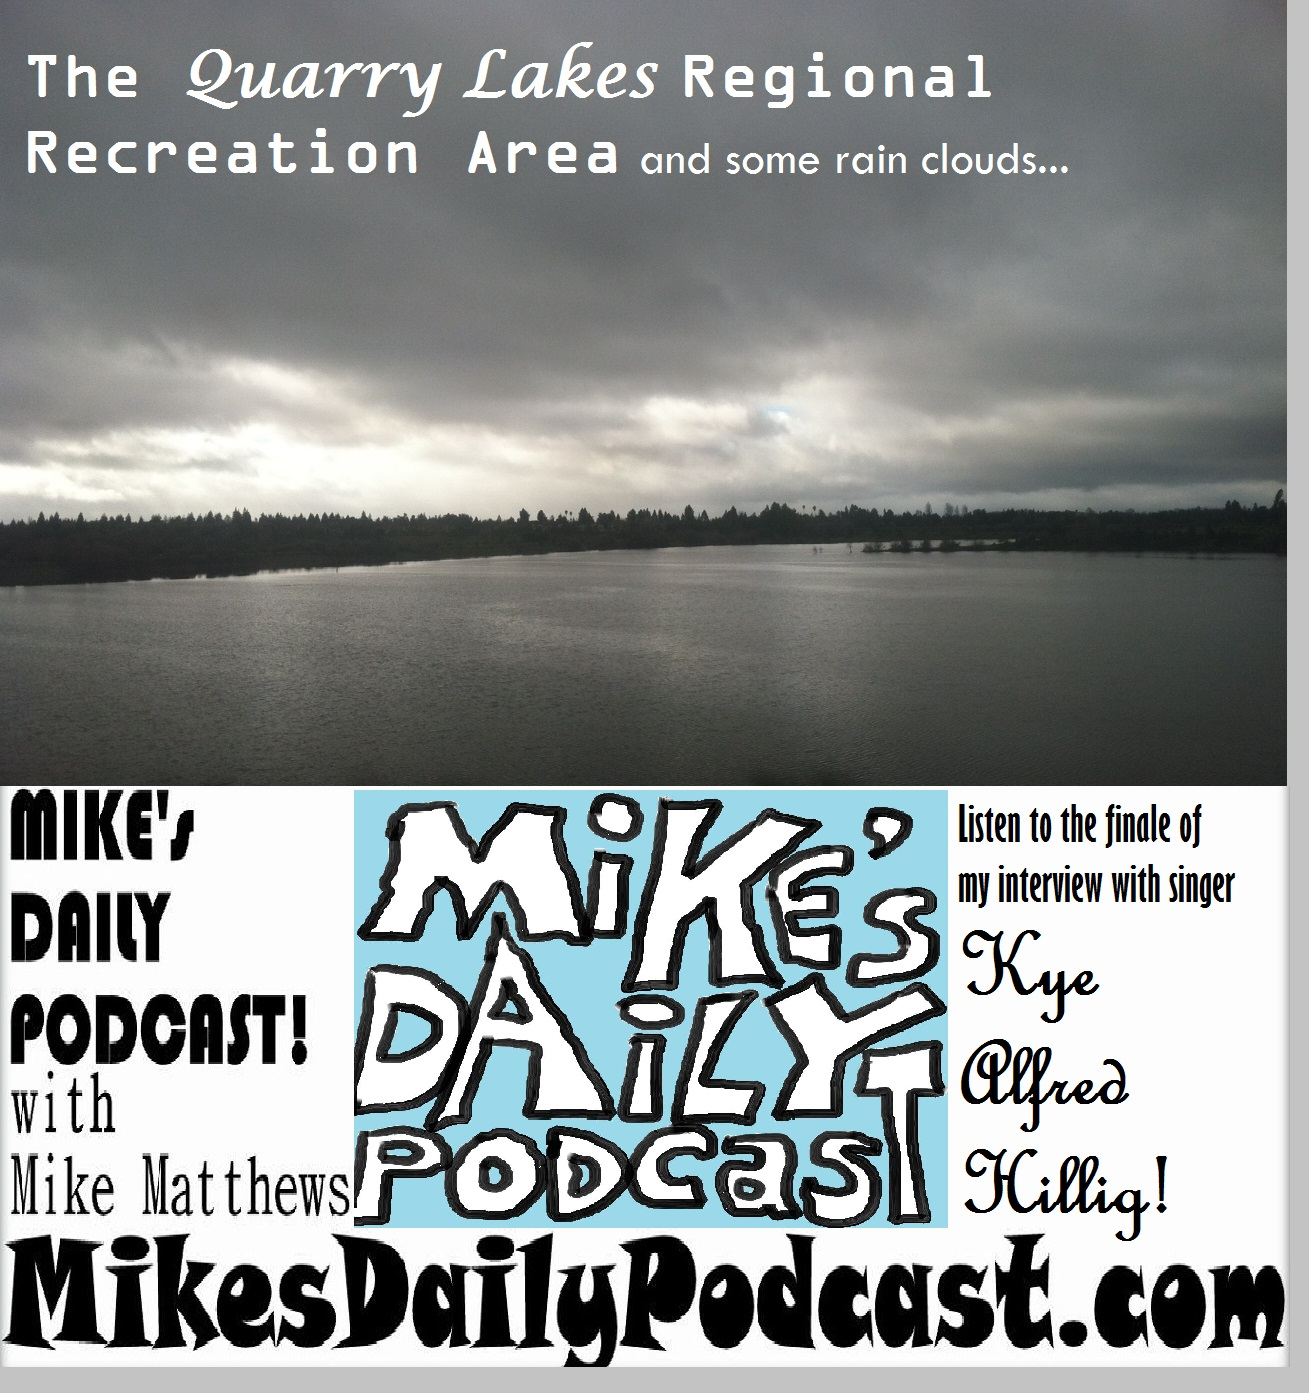 MIKEs DAILY PODCAST 1015 Quarry Lakes Union City